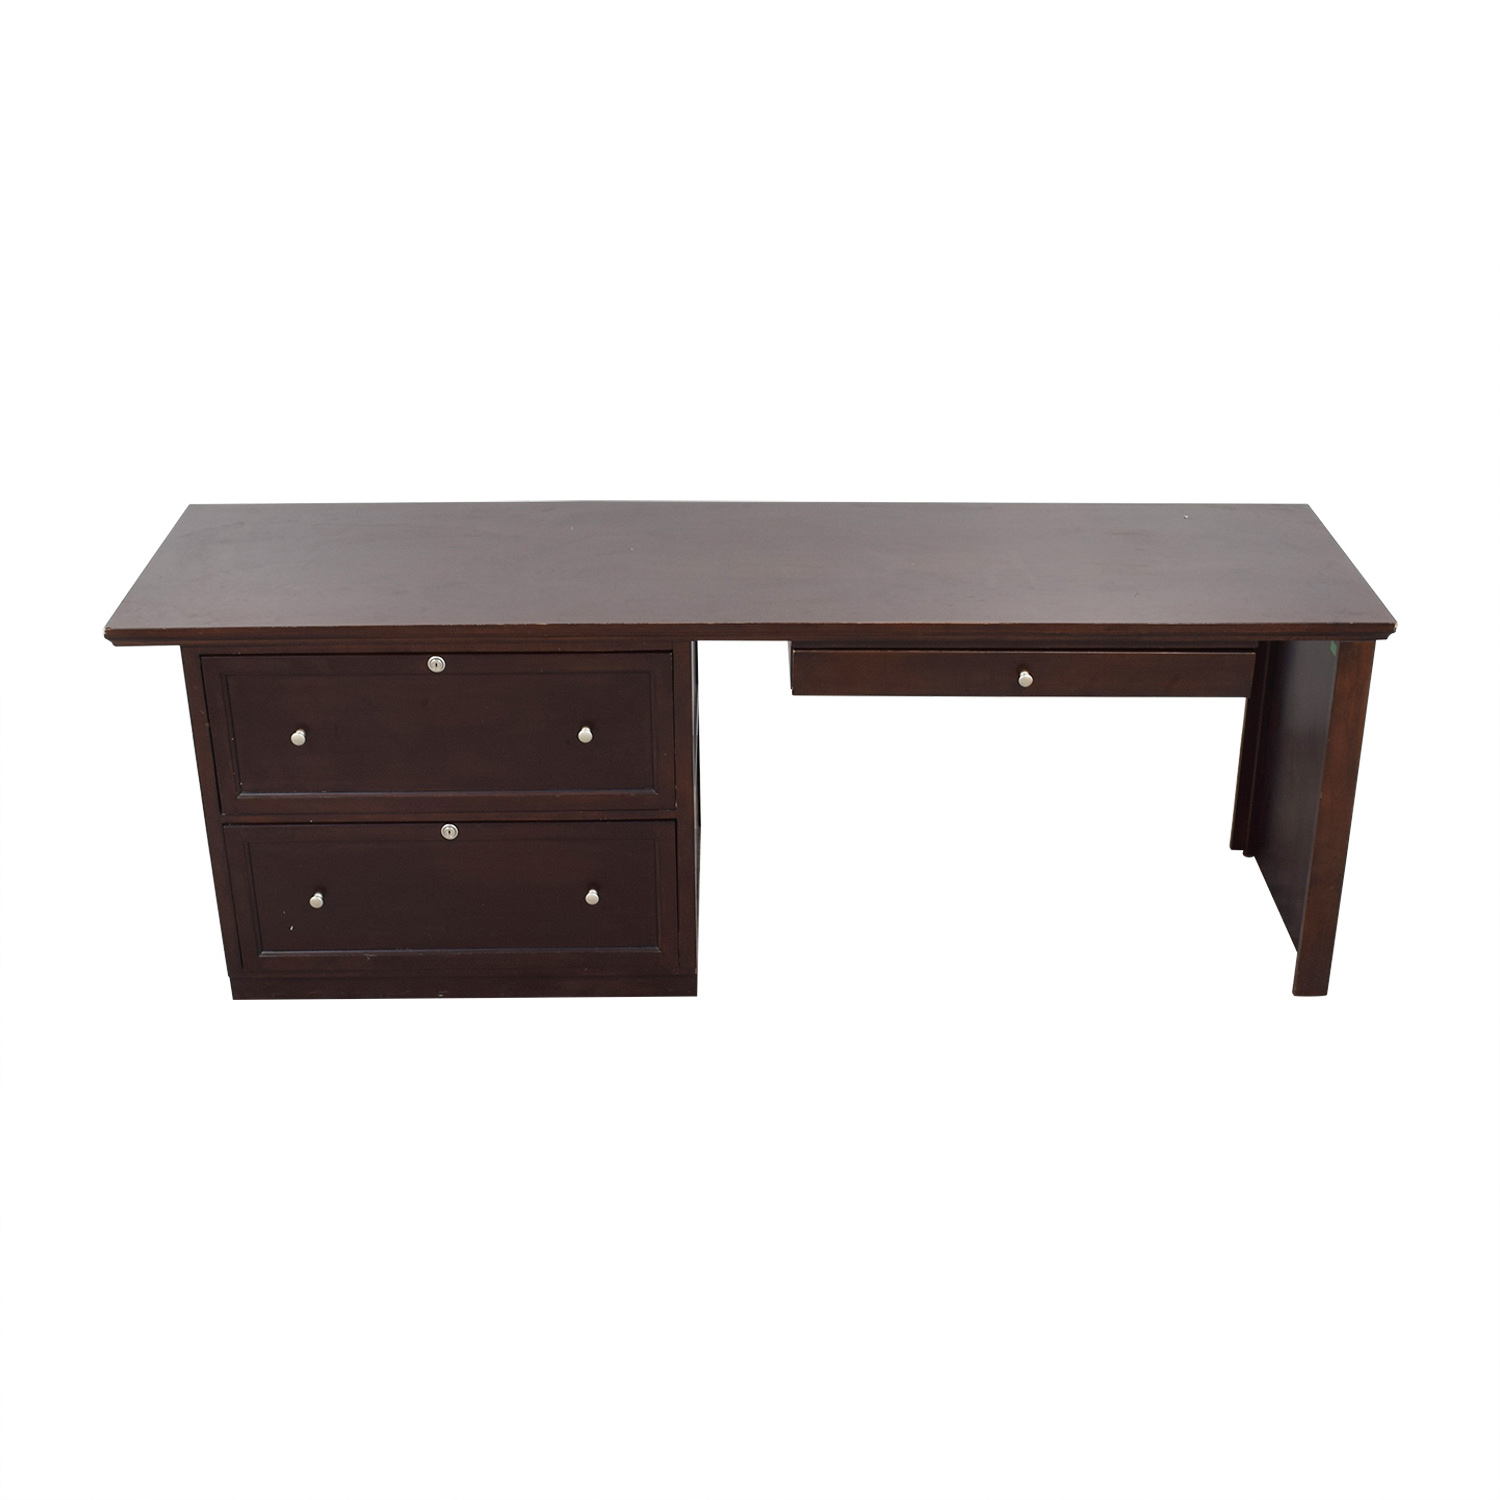 Bassett Bassett Large Executive Espresso Desk on sale